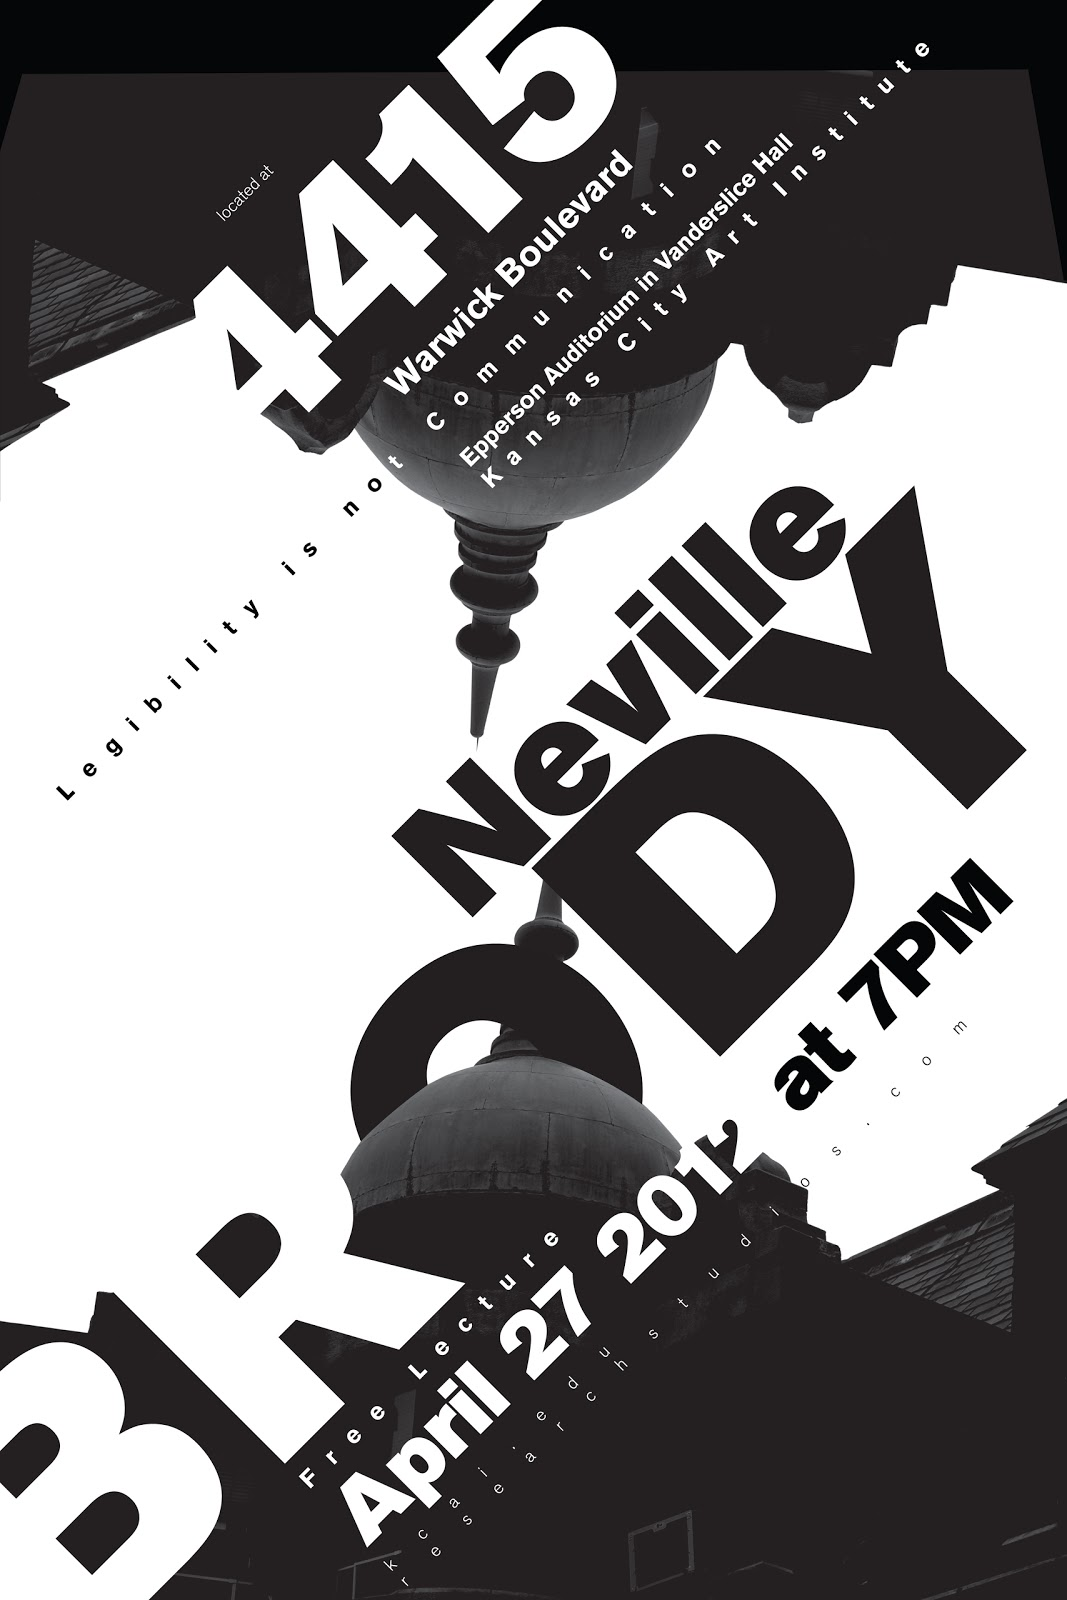 Ido Design Neville Brody Lecture Poster Final